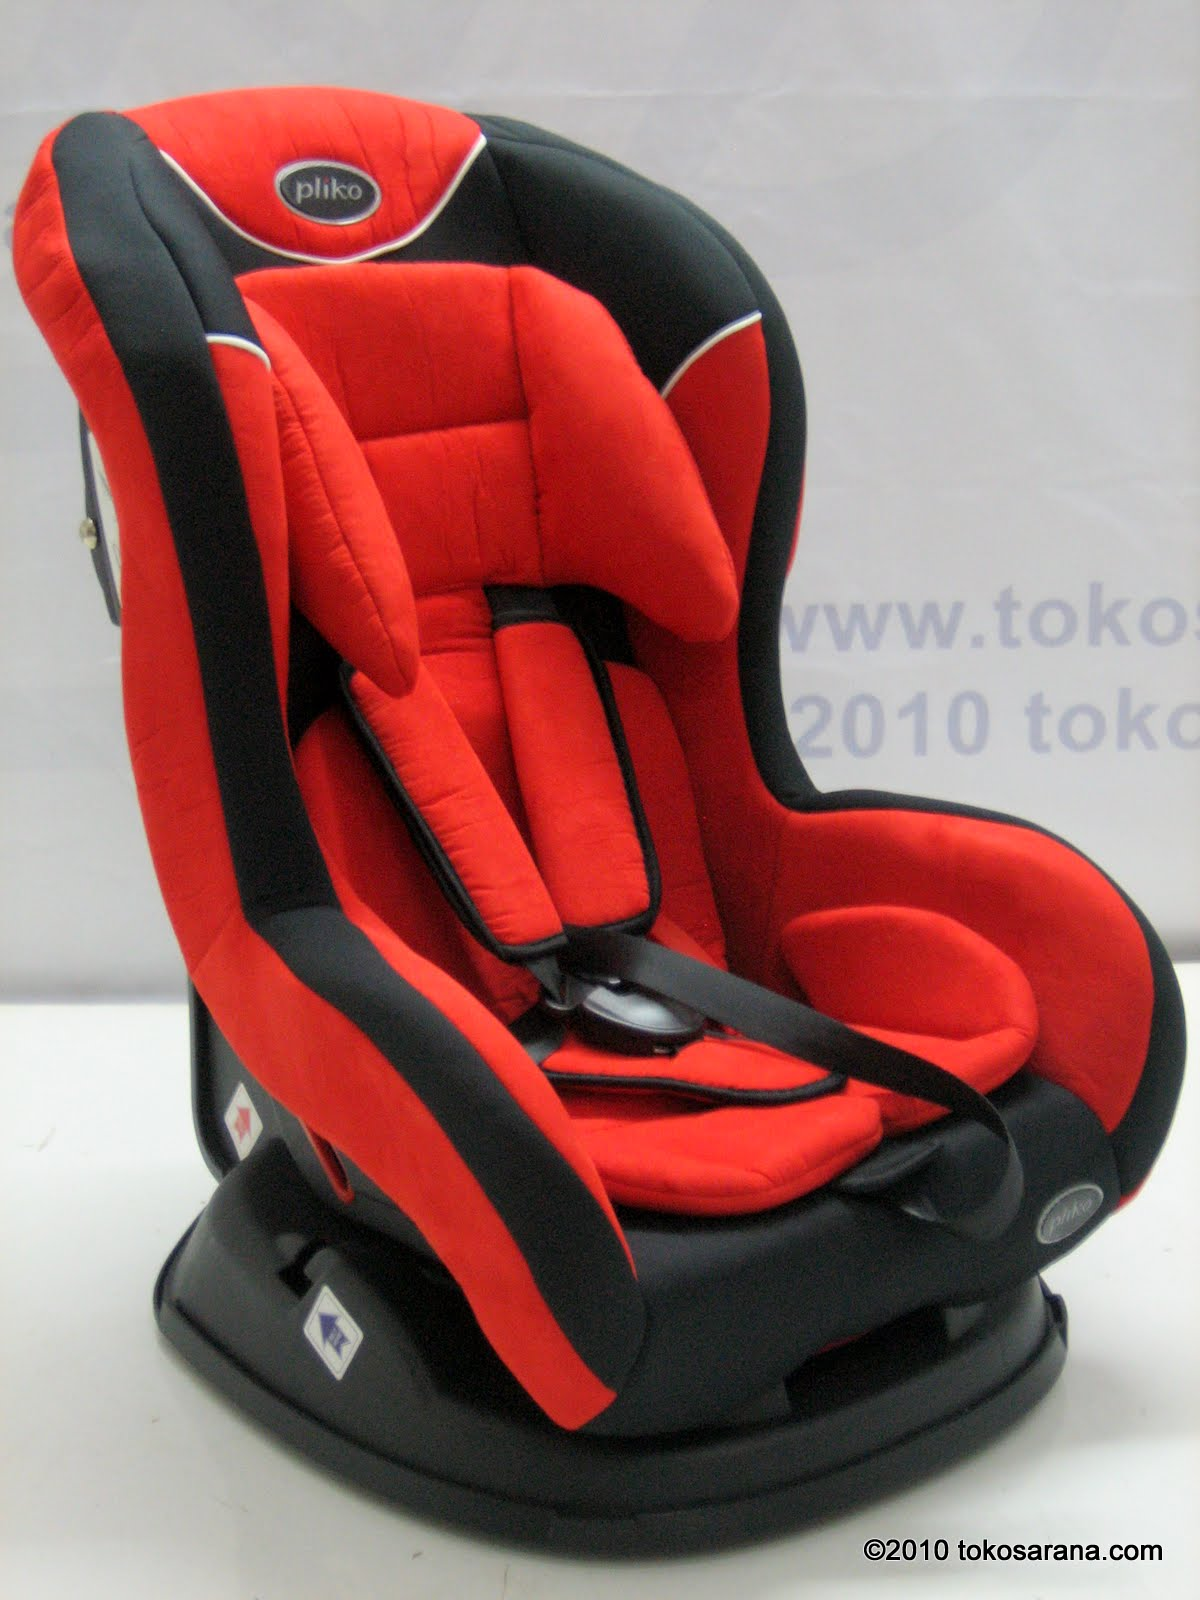 Tokomagenta A Showcase Of Products Baby Car Seat PLIKO